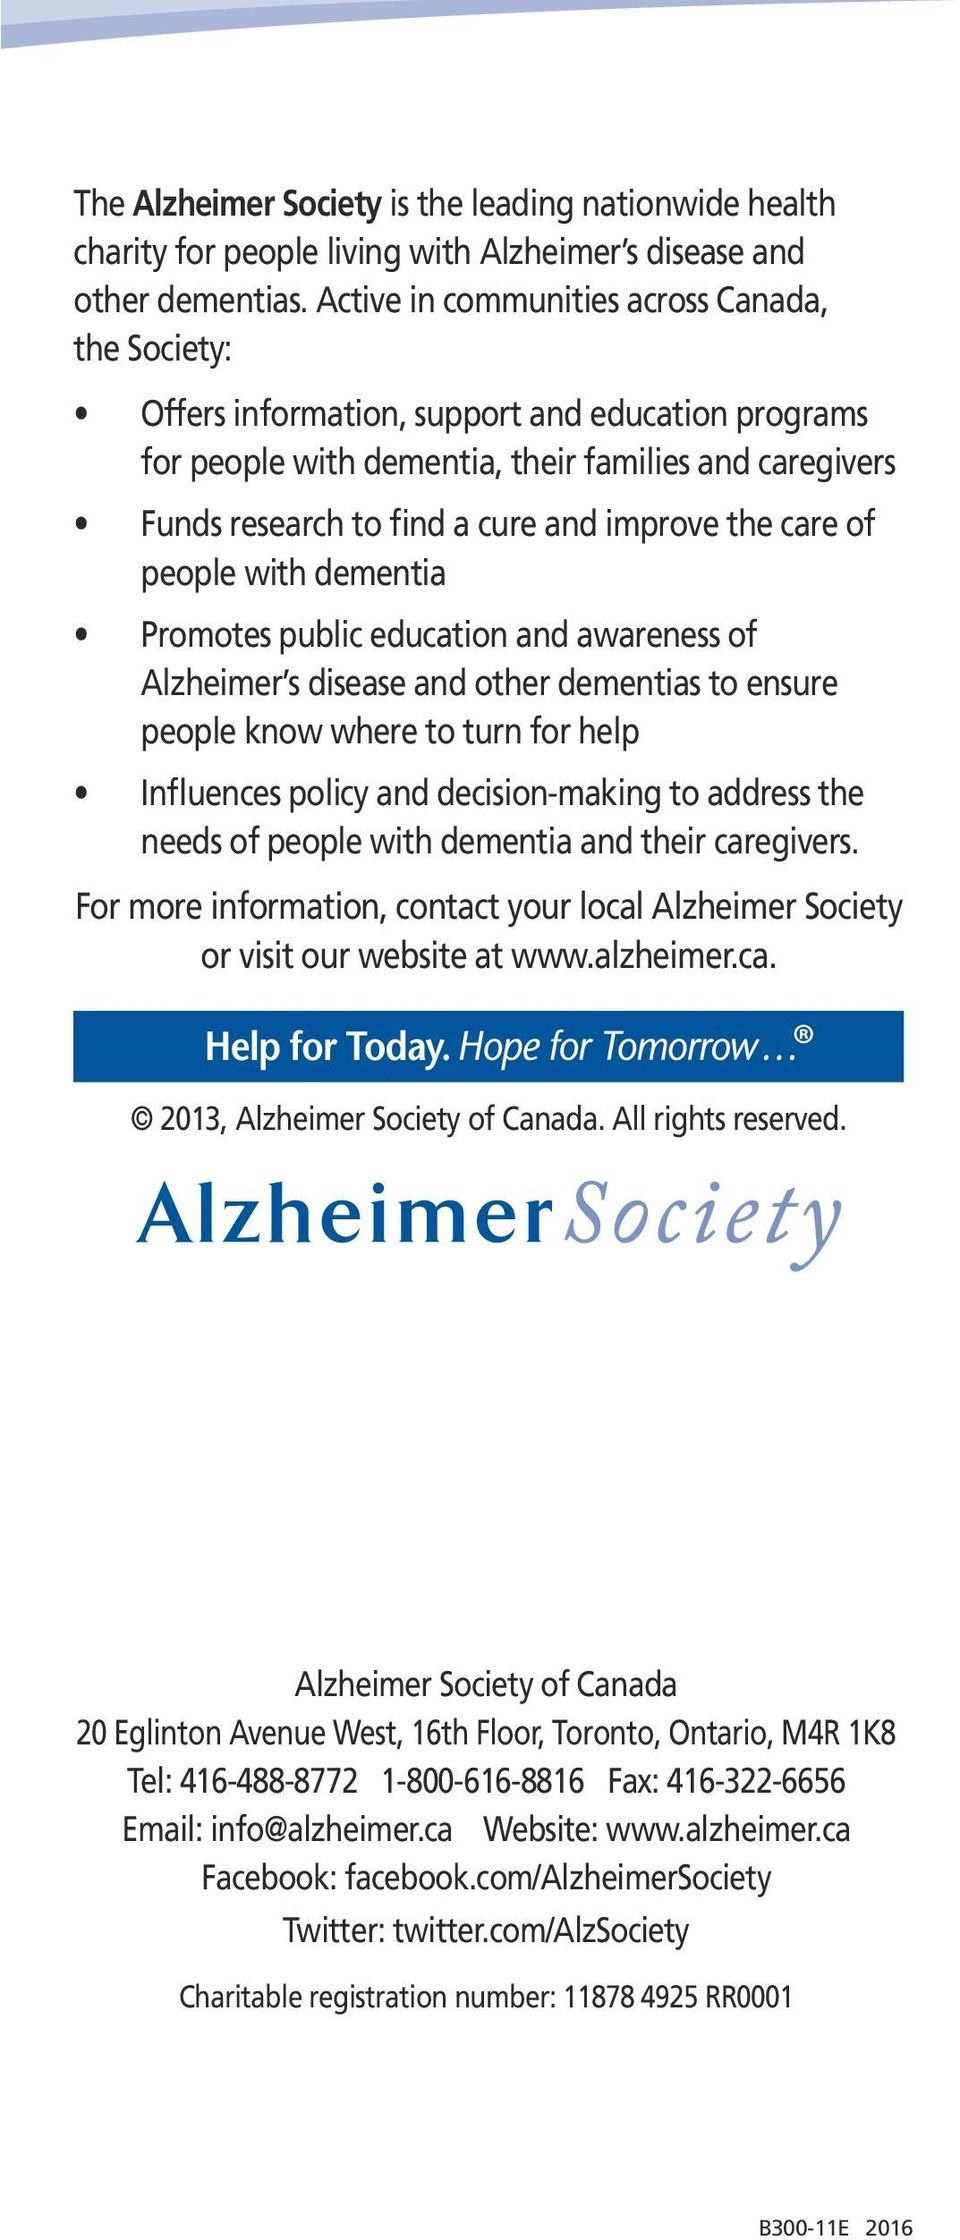 the care of people with dementia Promotes public education and awareness of Alzheimer s disease and other dementias to ensure people know where to turn for help Influences policy and decision-making